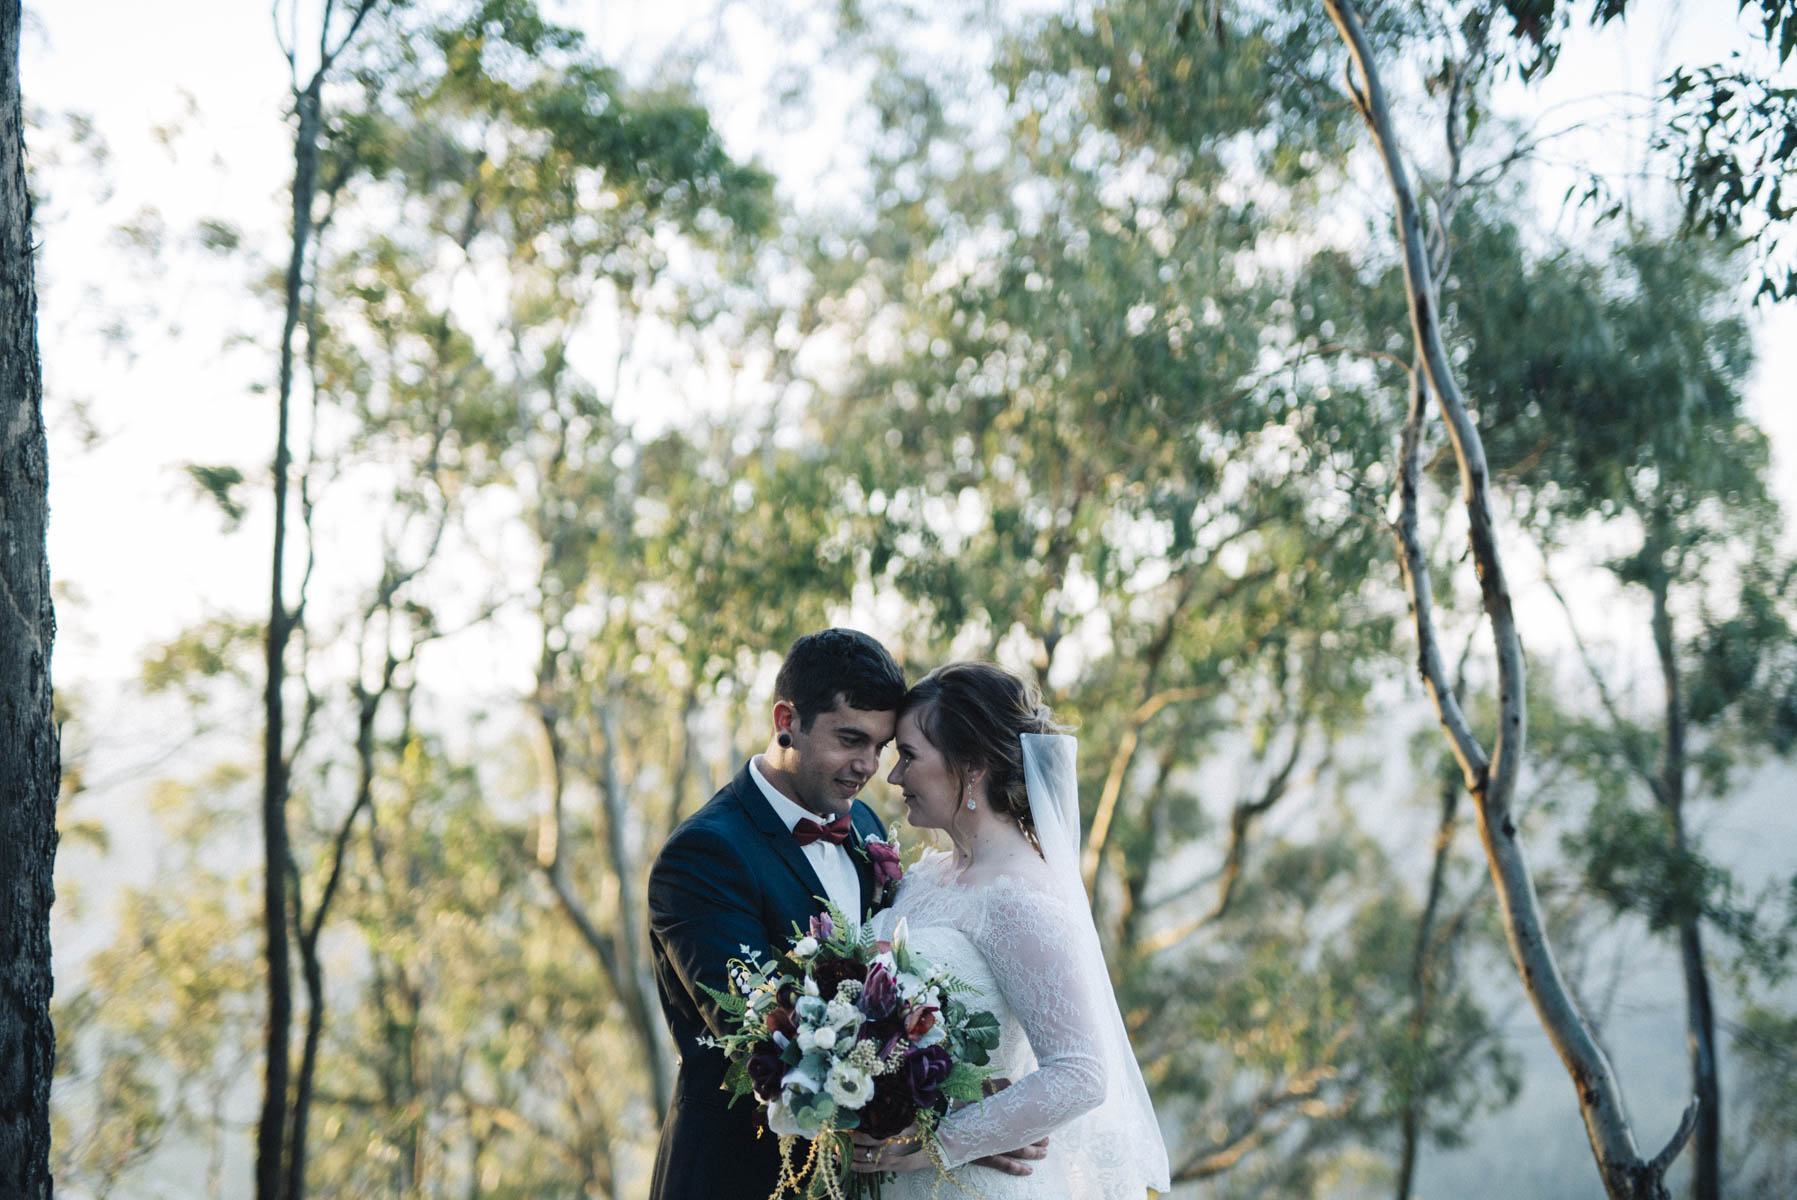 Nathan + Penelope | Toowoomba Wedding Video | 17/07/2017 | Preston Peak Chapel, Toowoomba, QLD